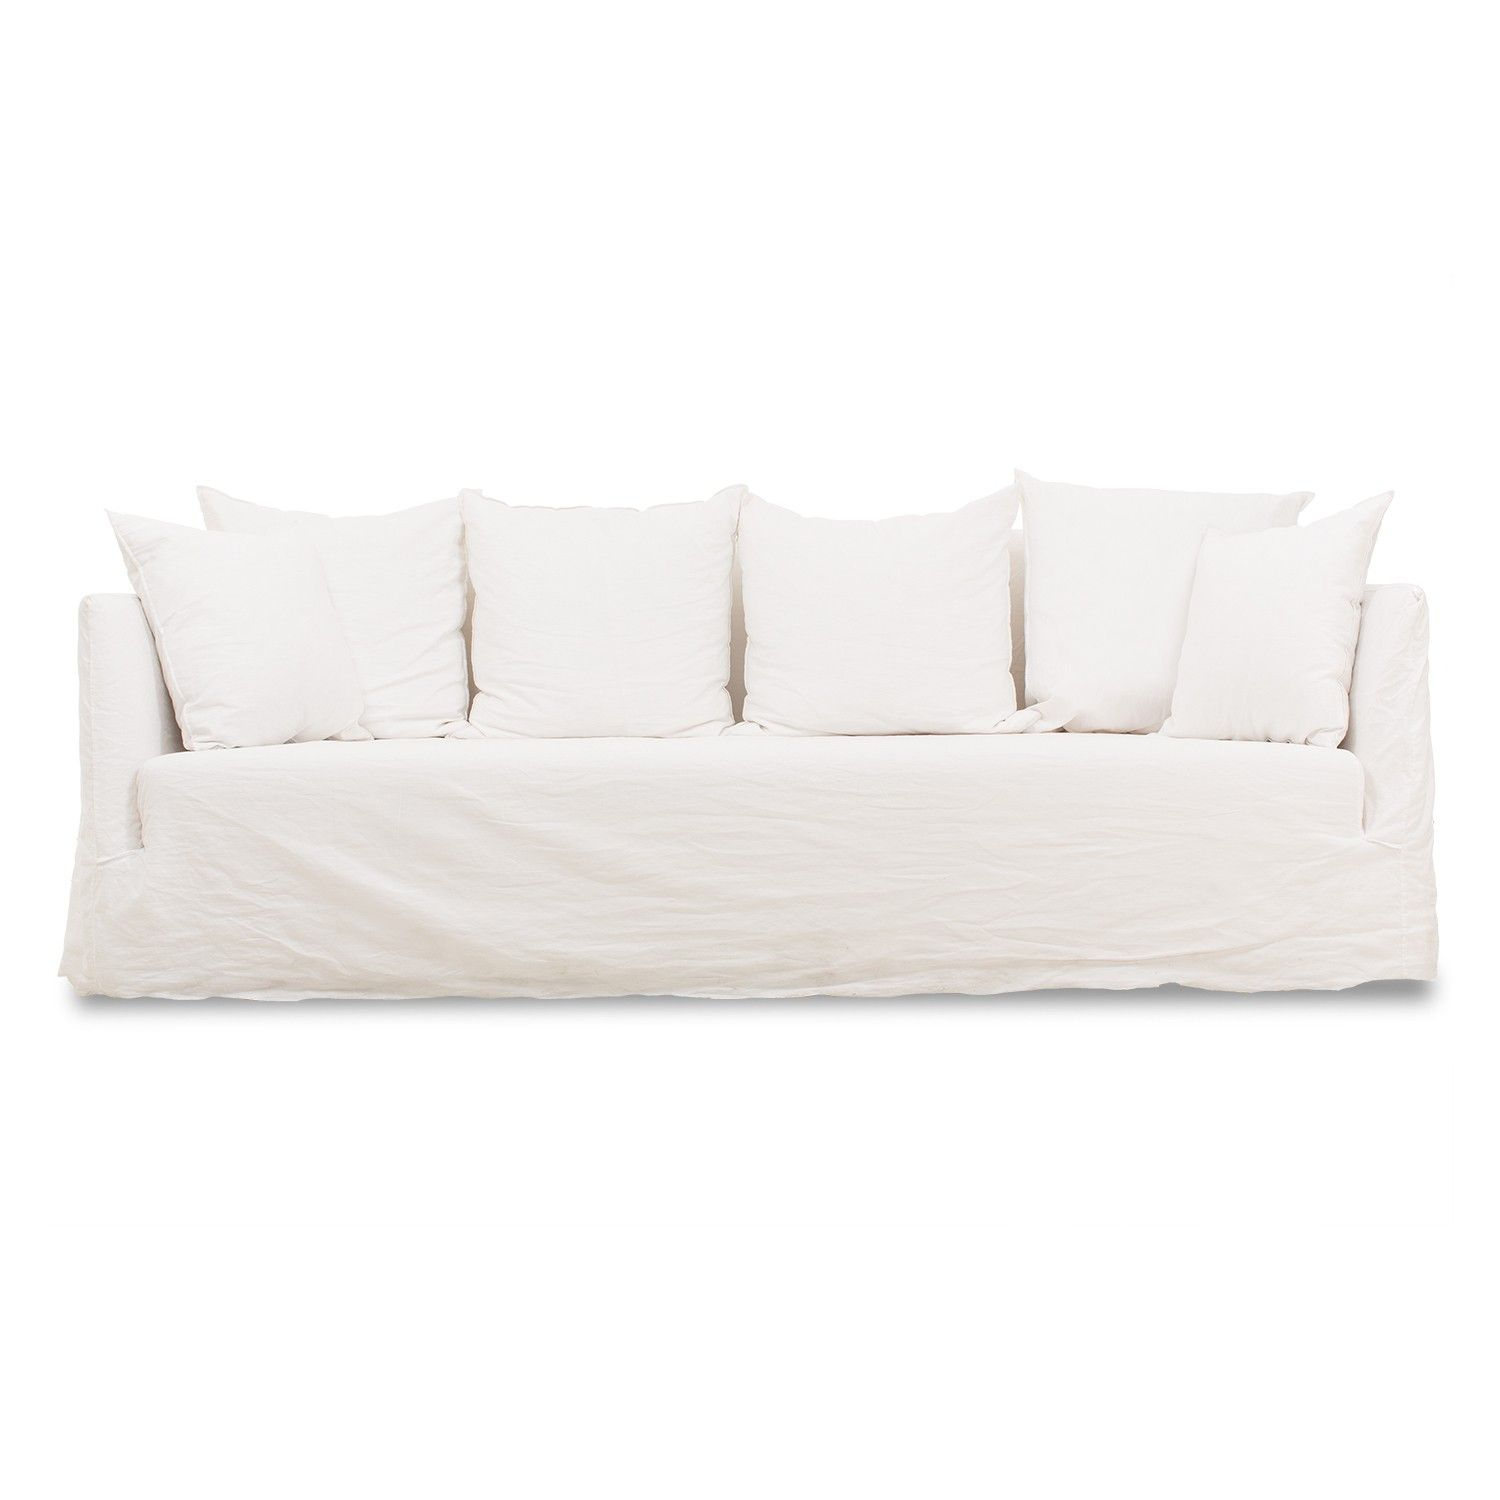 Exclusively at ABC the Ghost sofa is the perfect piece for an